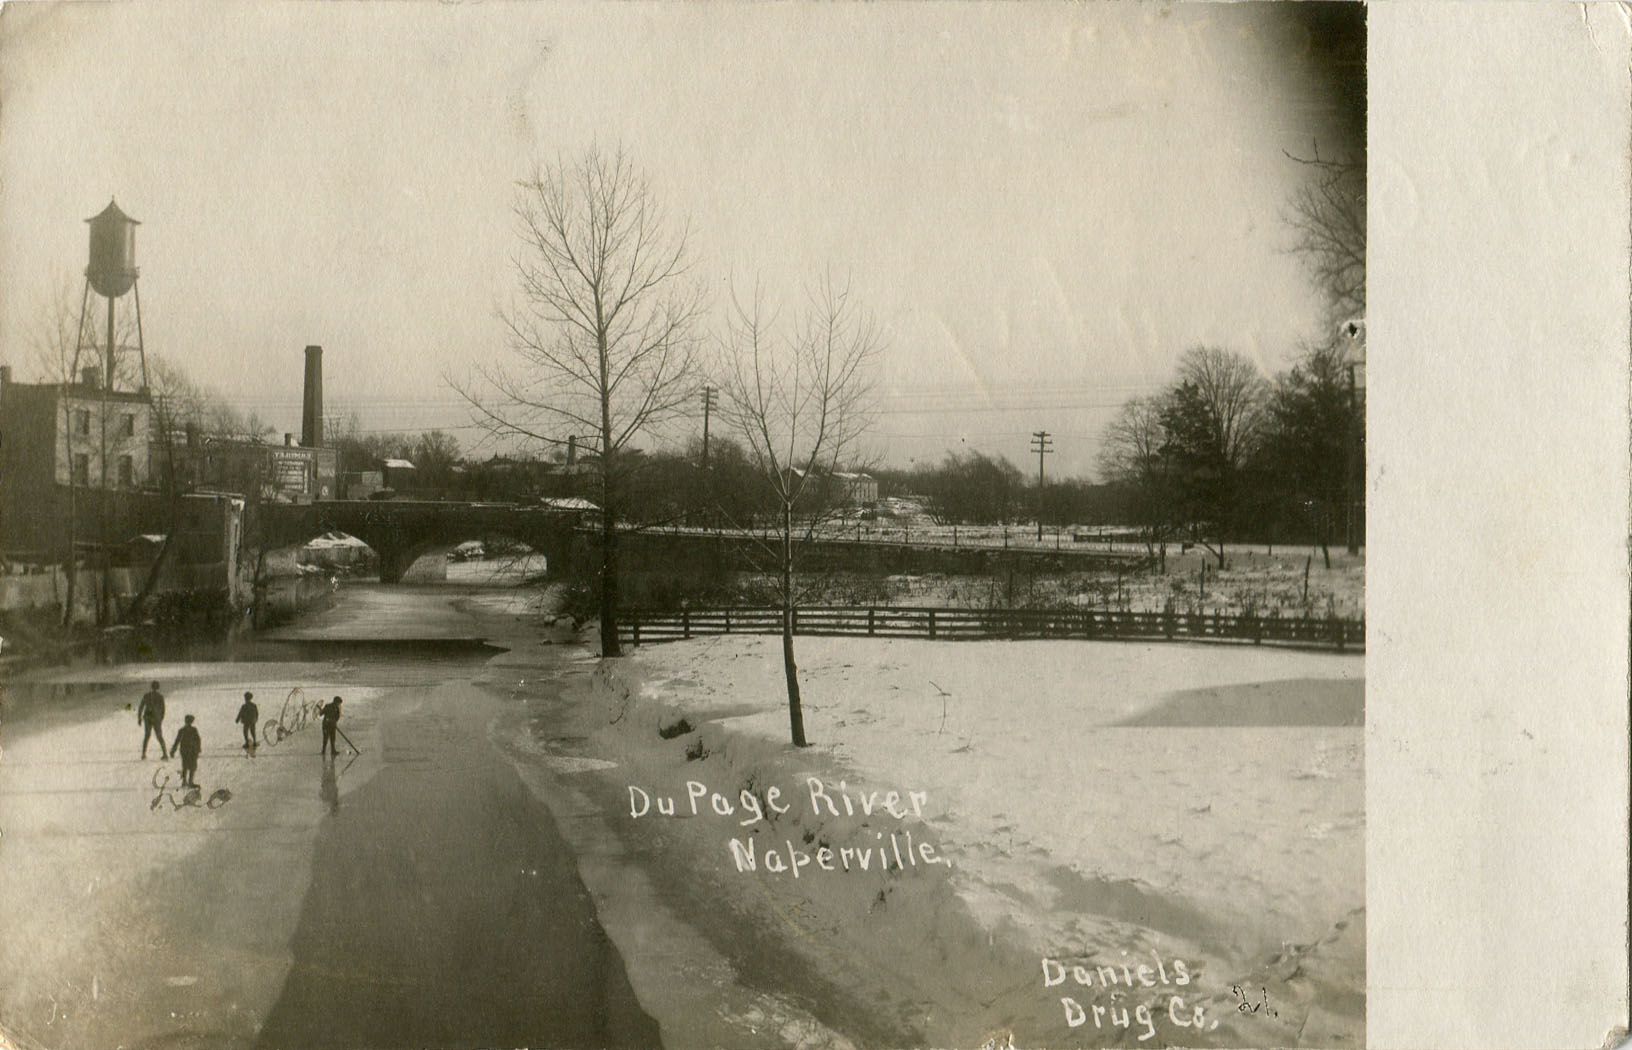 DuPage River during winter postcard